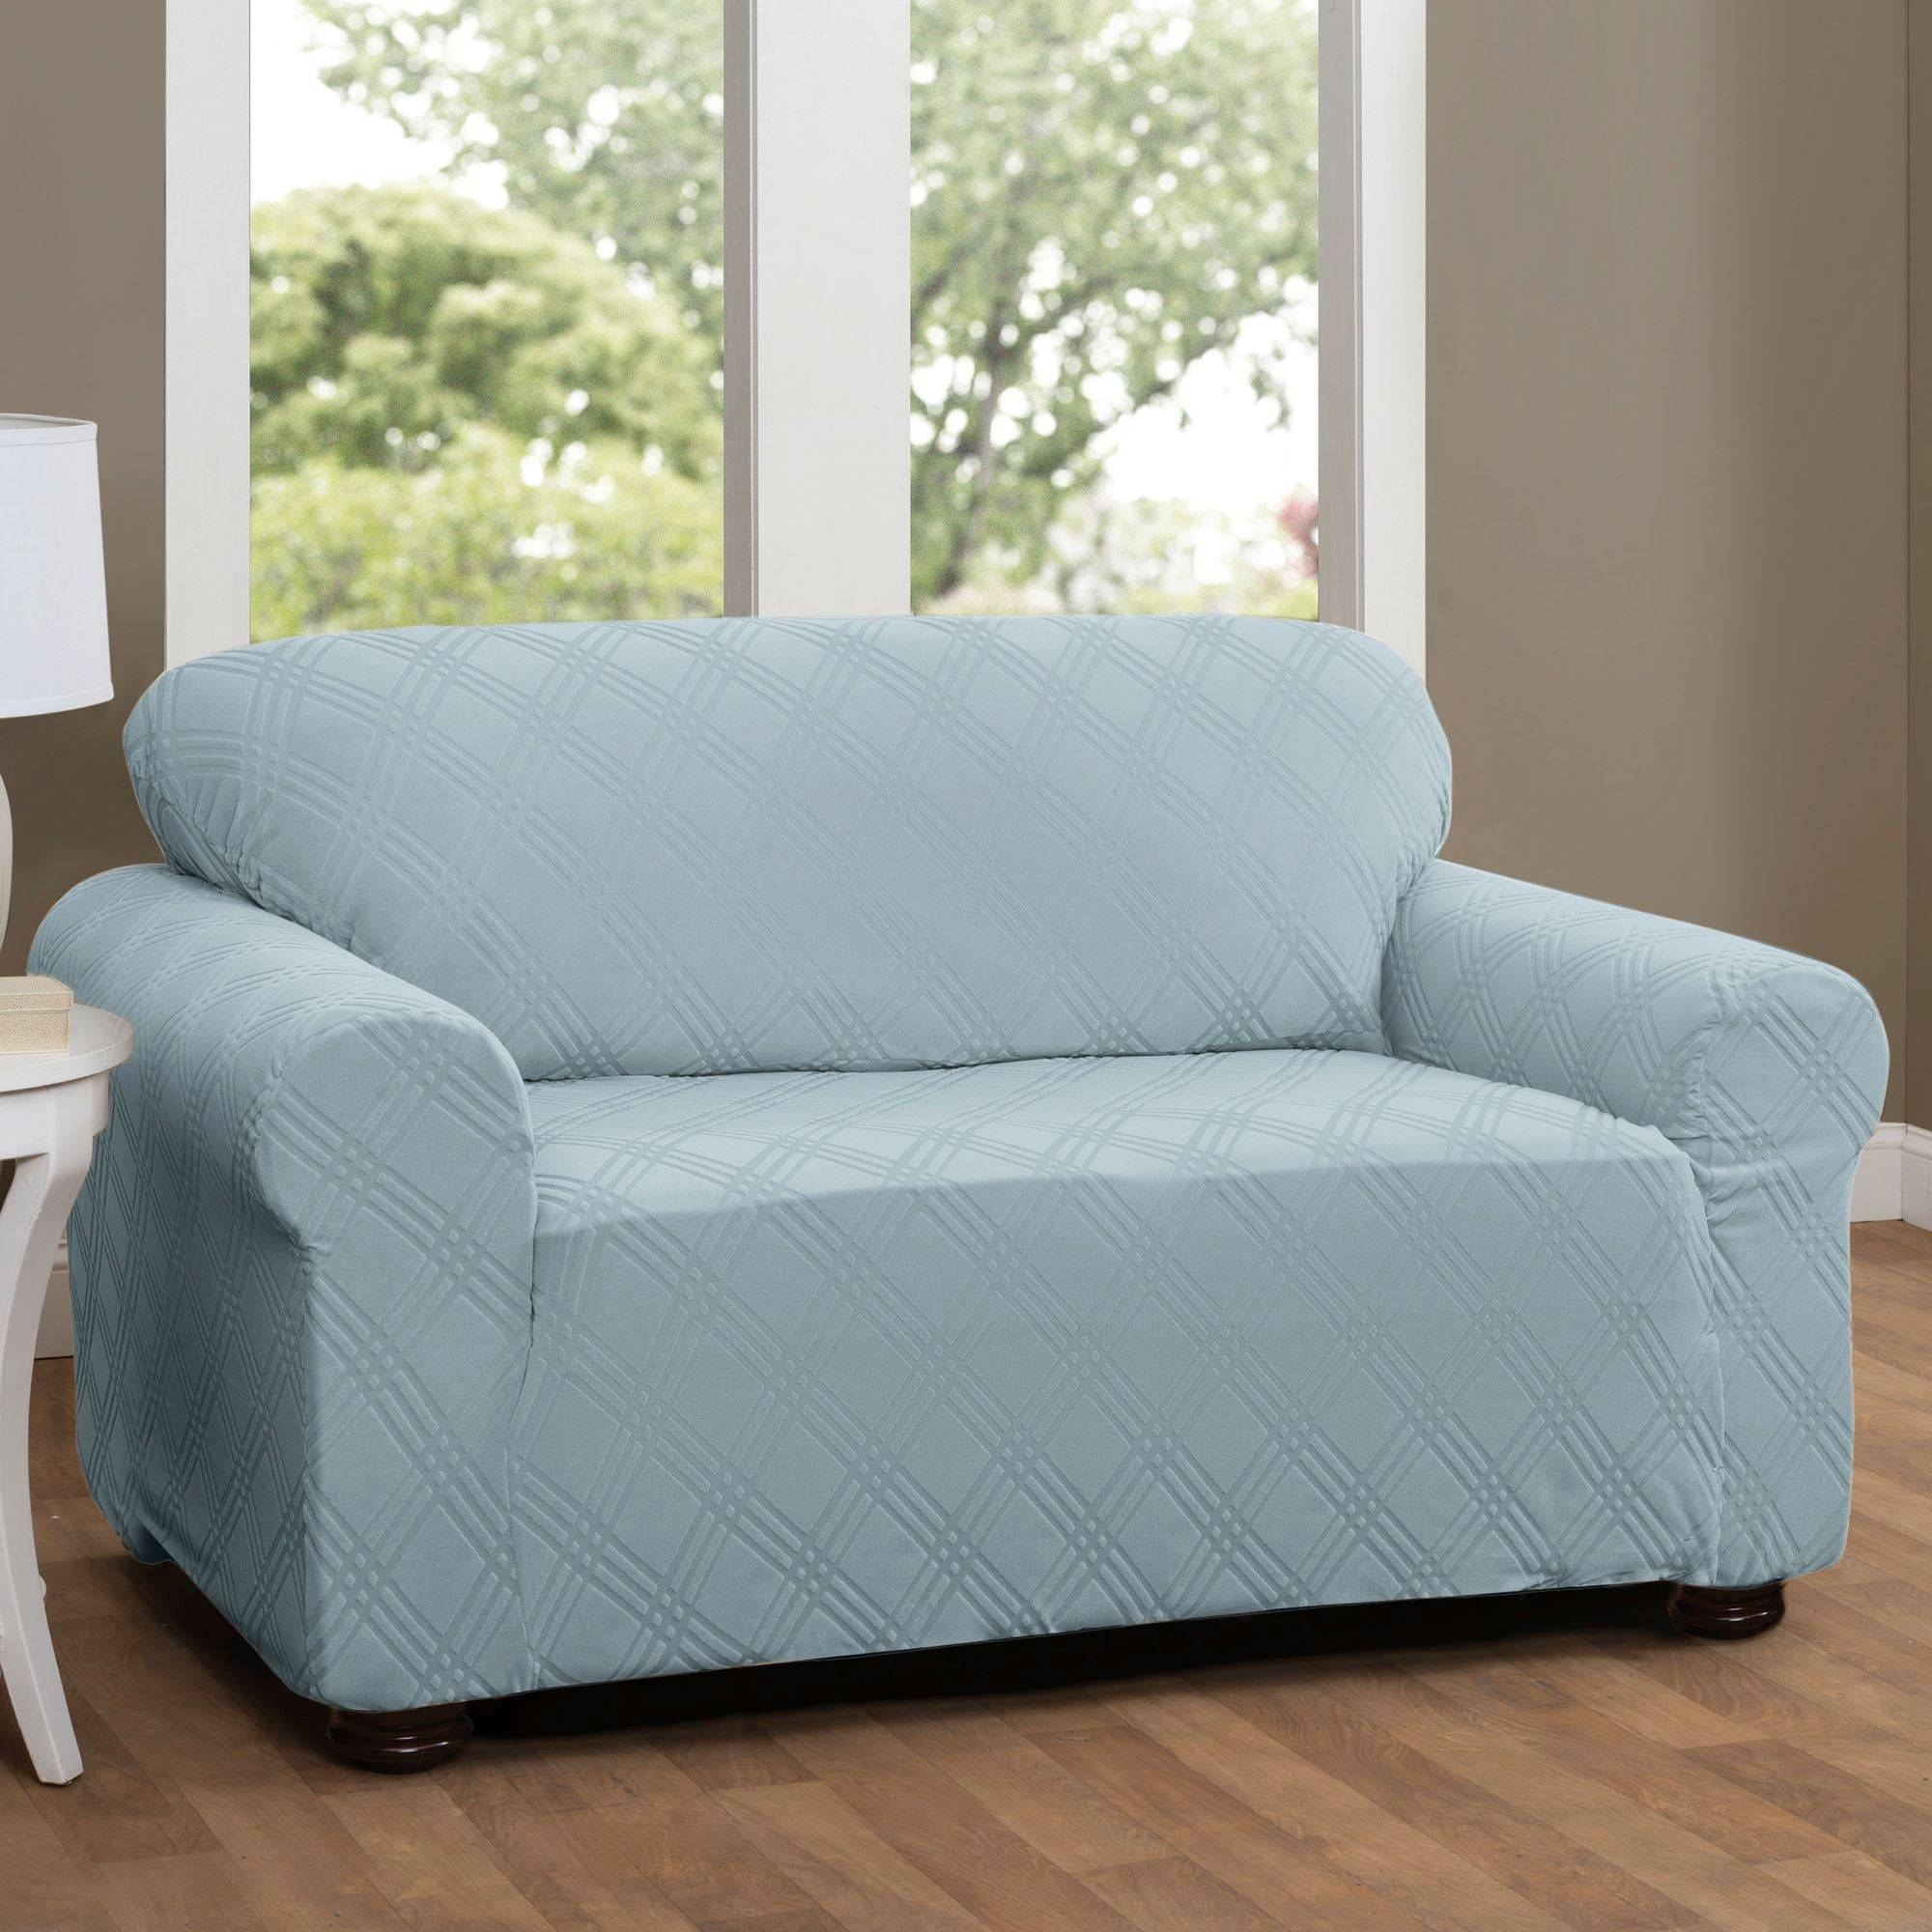 Double Diamond Stretch Loveseat Slipcovers in Blue Slipcovers (Image 4 of 15)